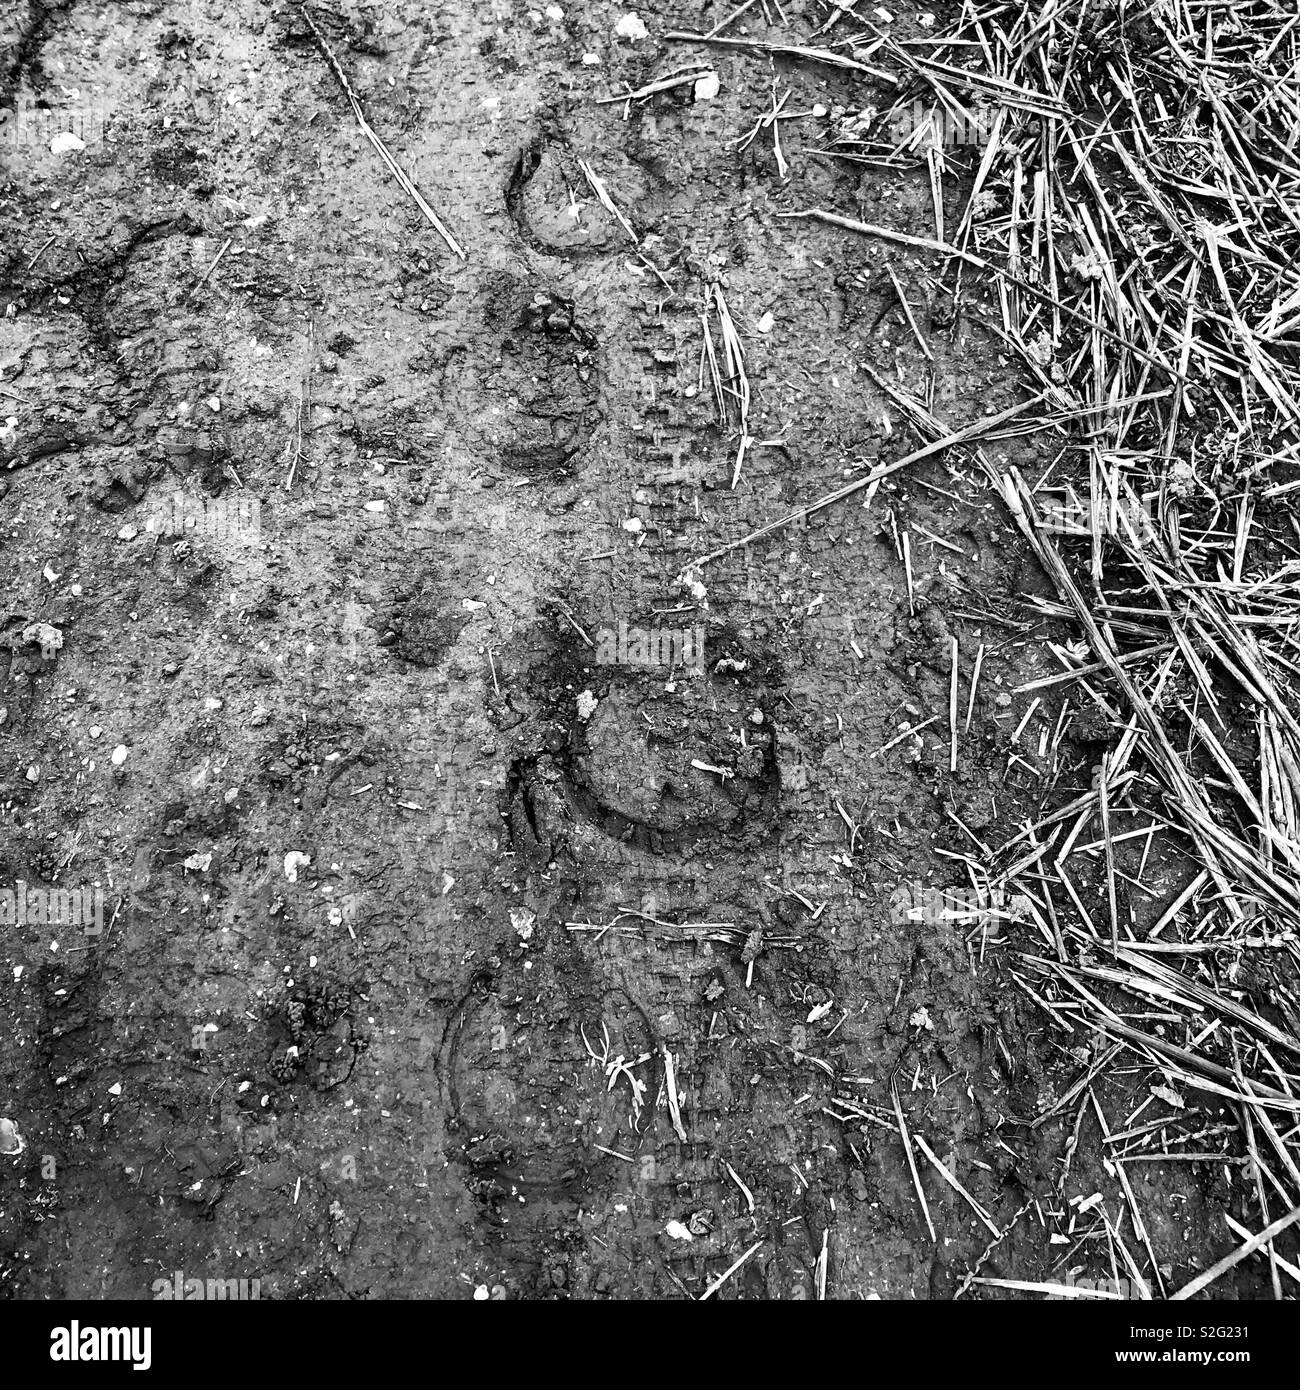 Cycle tyre tracks overlaid with horse hoof tracks - Stock Image